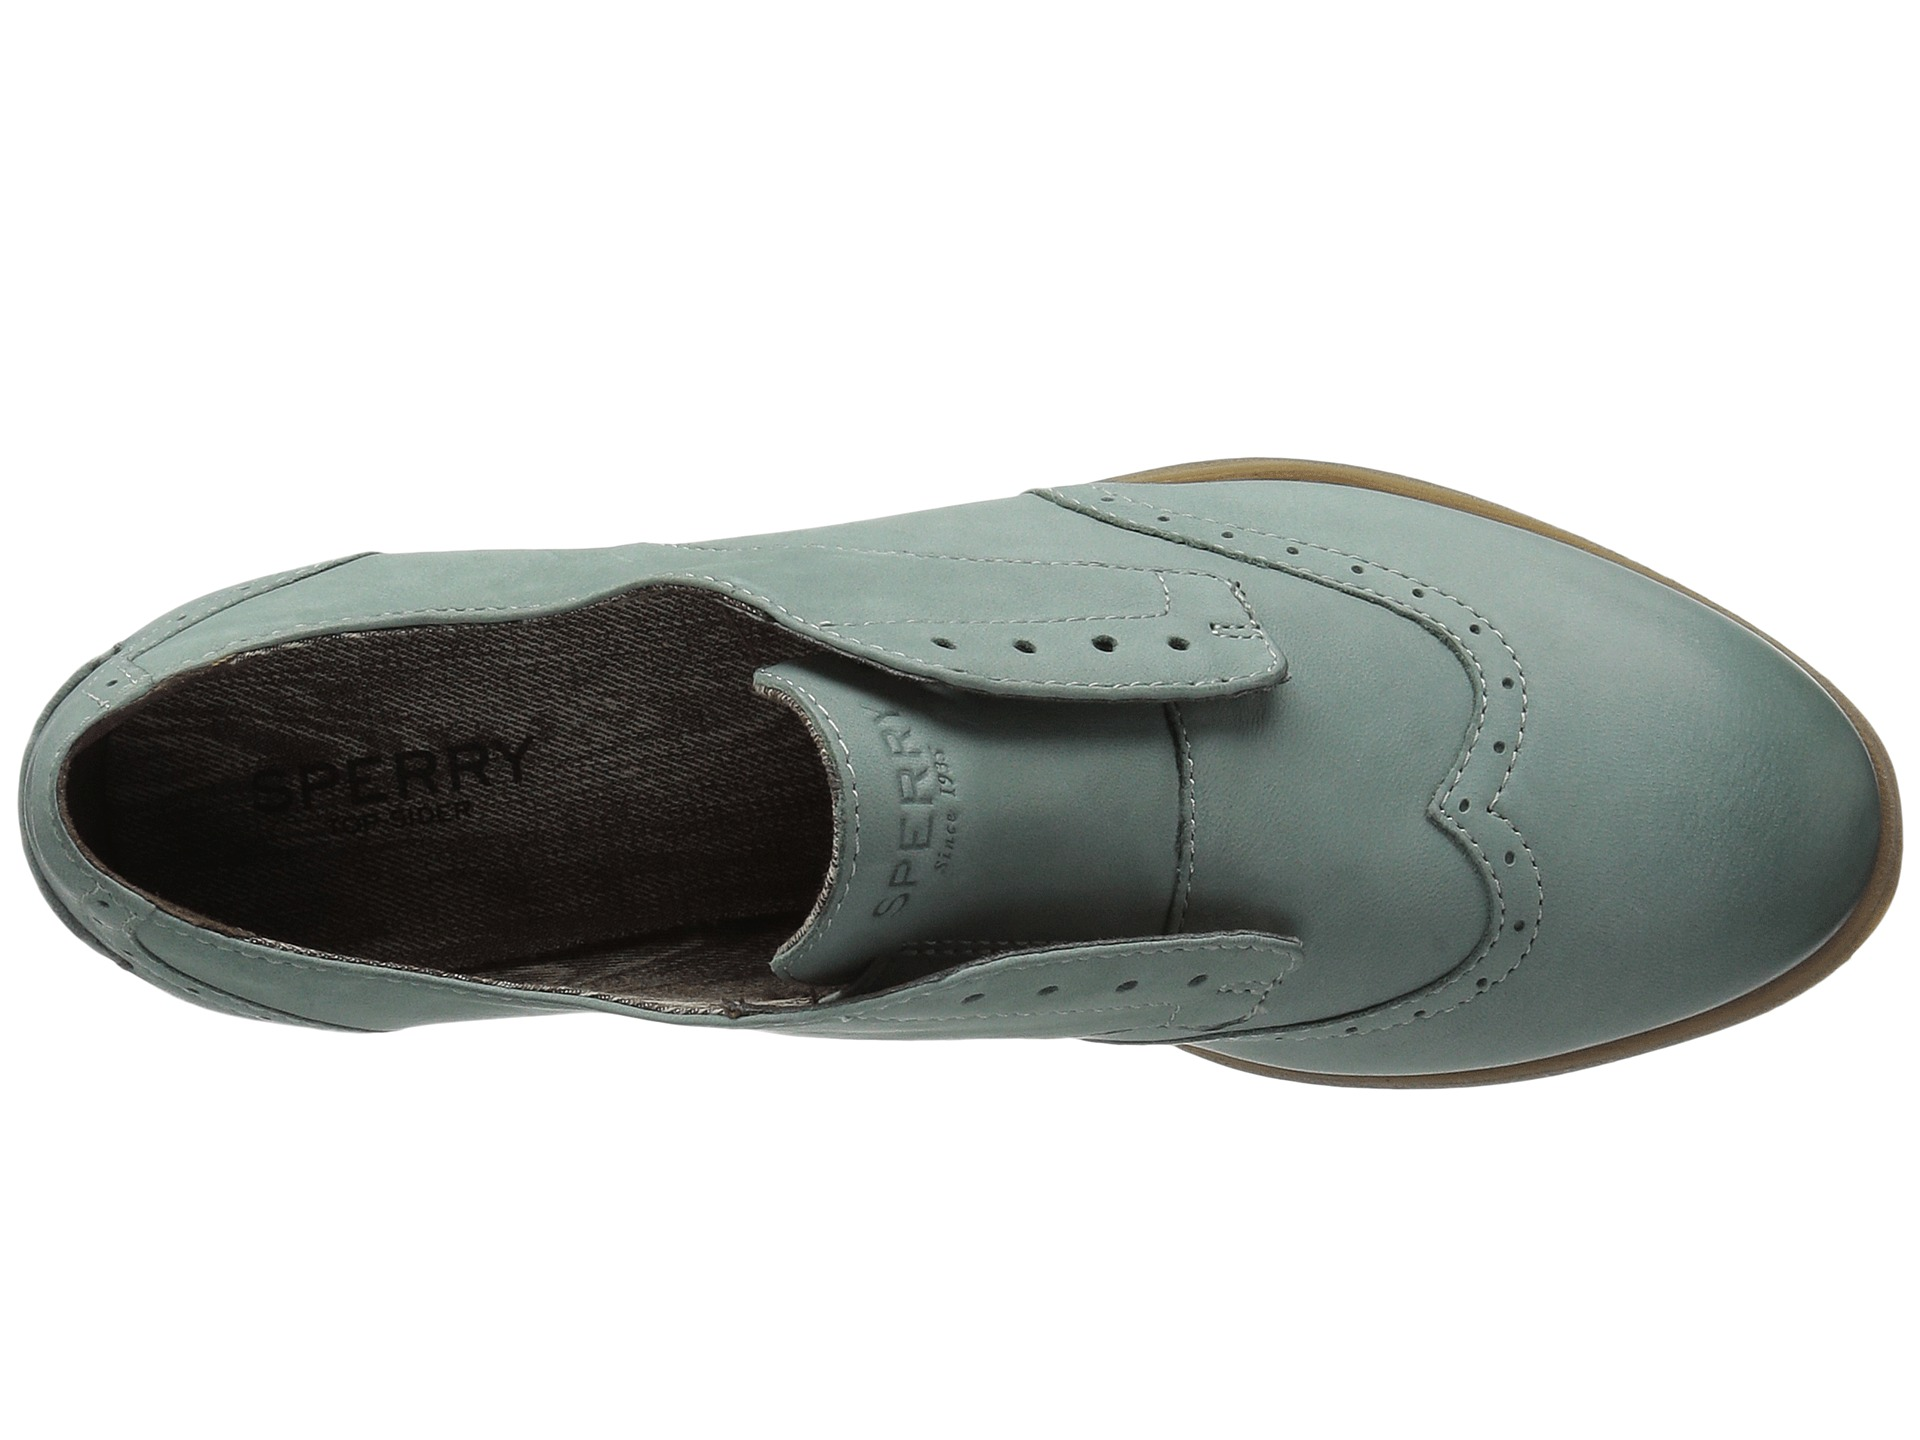 Non Marking Traction Shoes On Wet And Dry Surfaces Kids